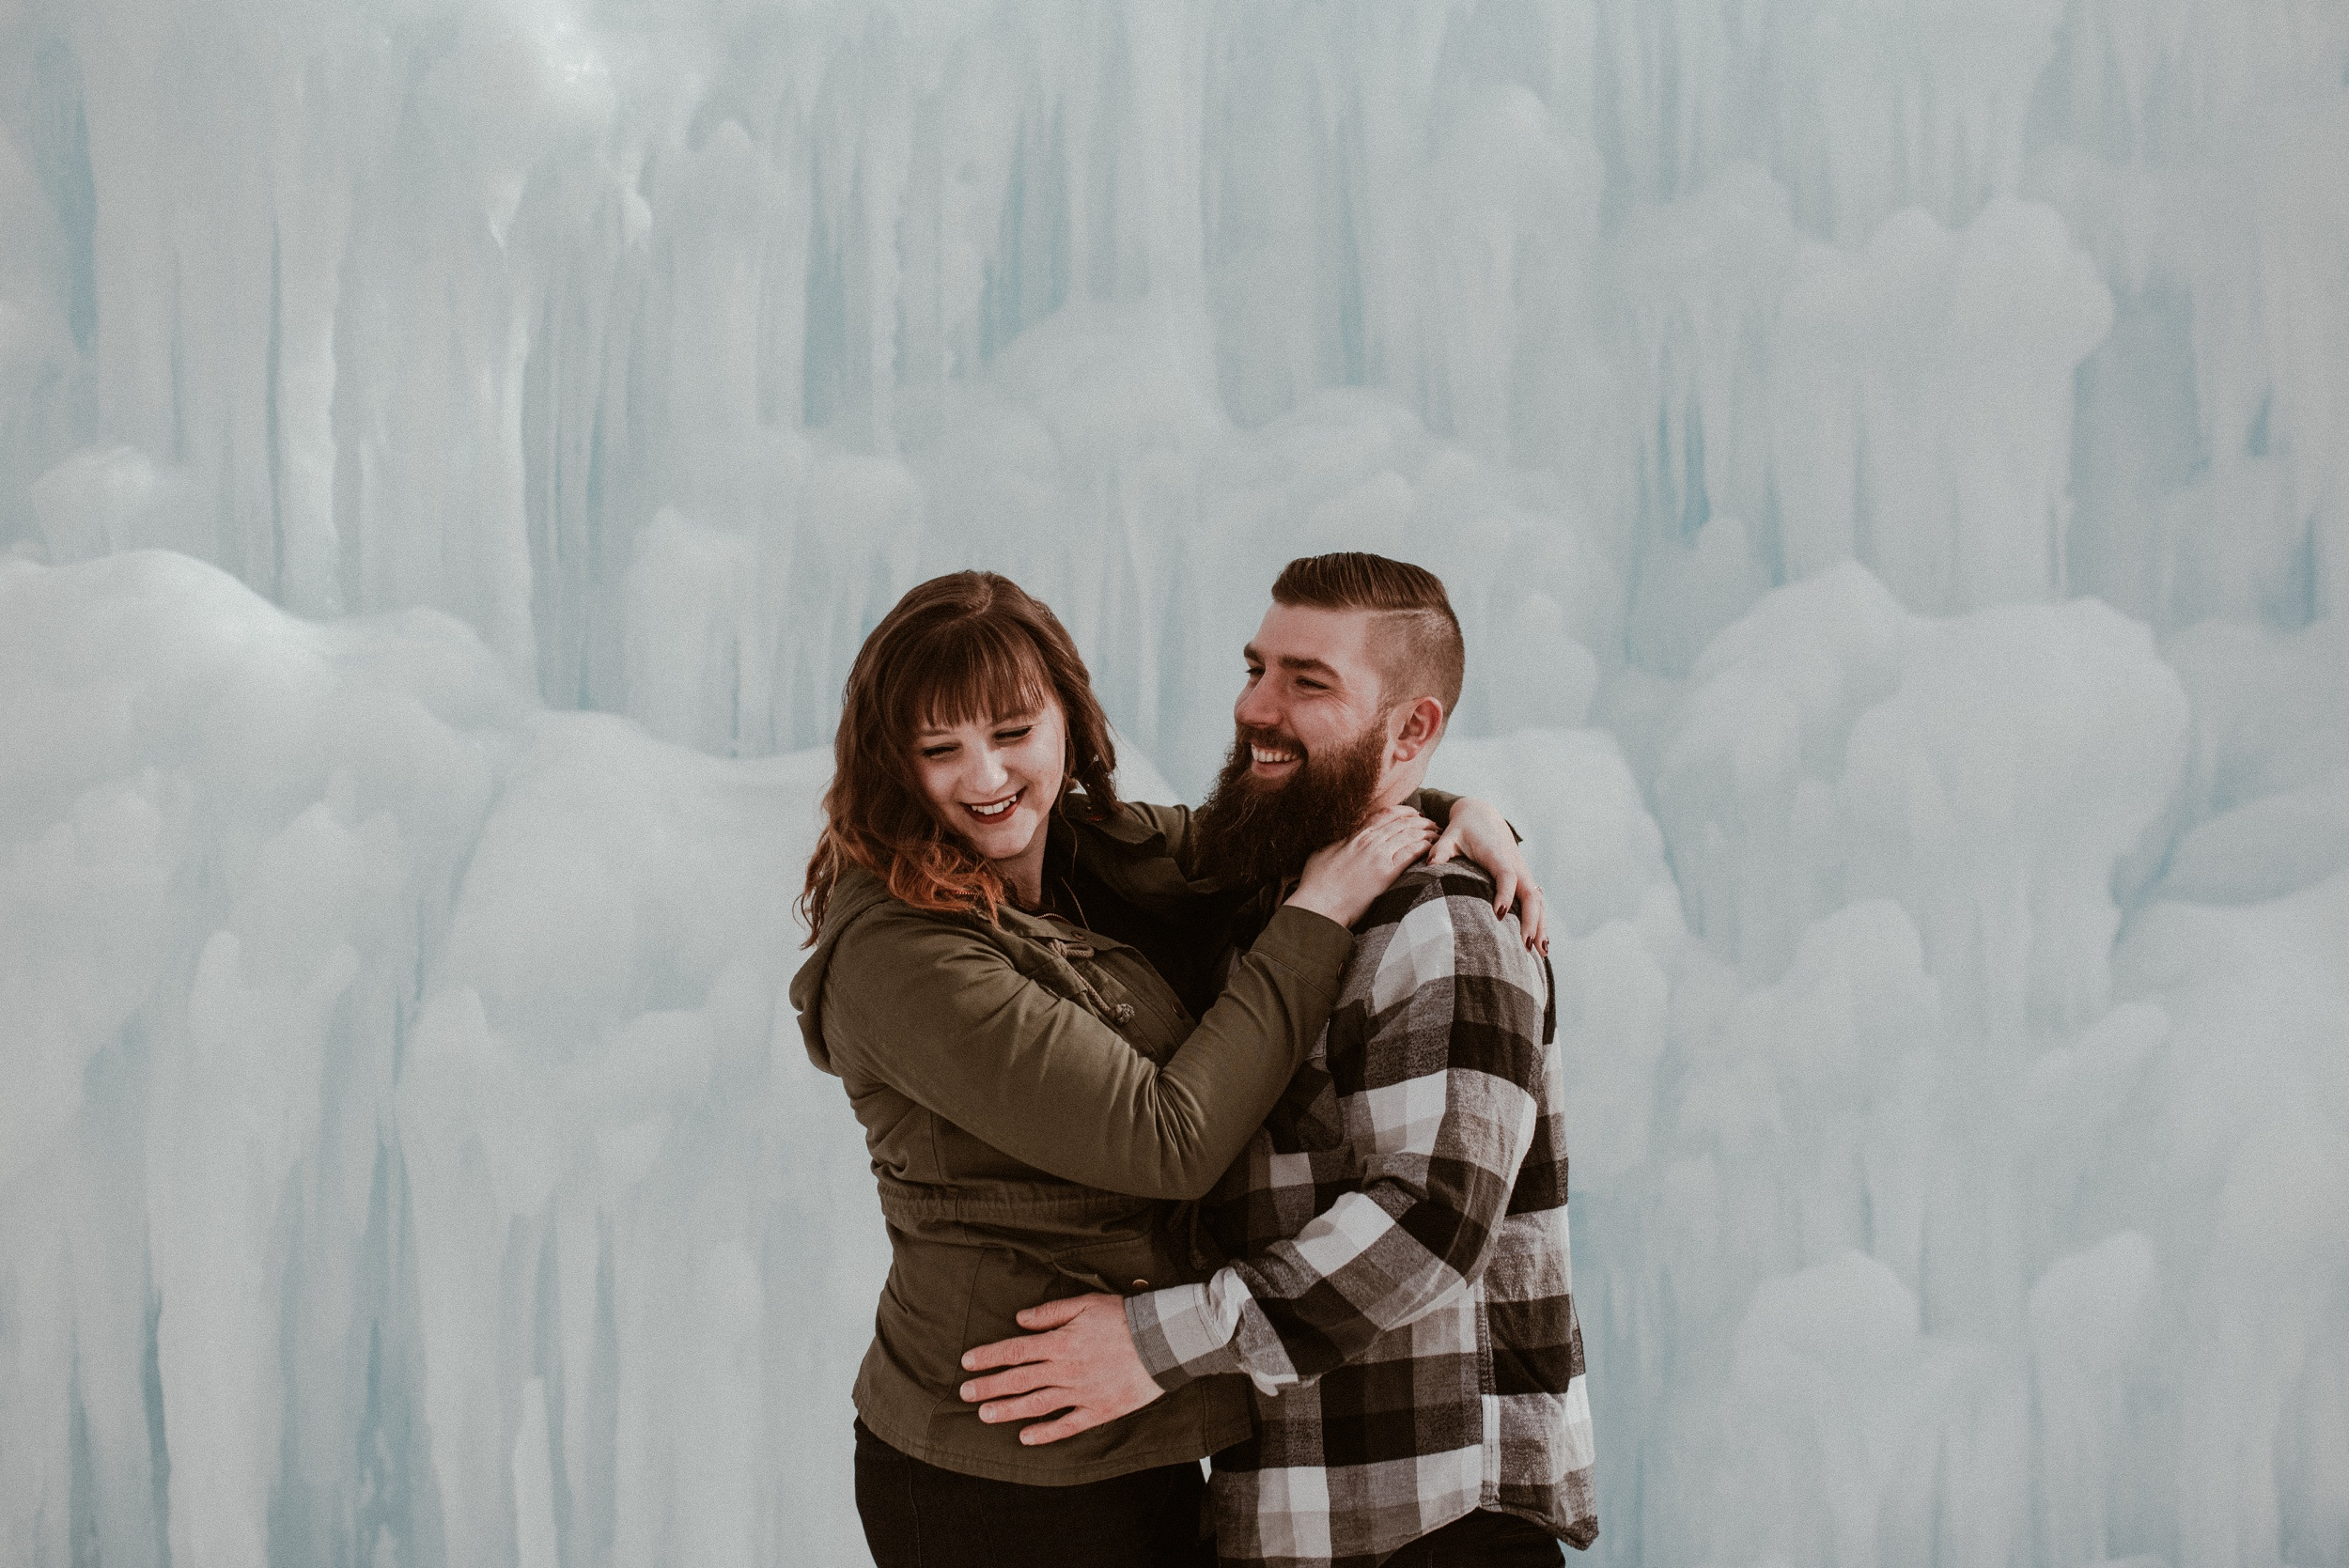 ice-castles-nh-engagement-session-boston-wedding-photographer-vanessa-alves-photography24.jpg